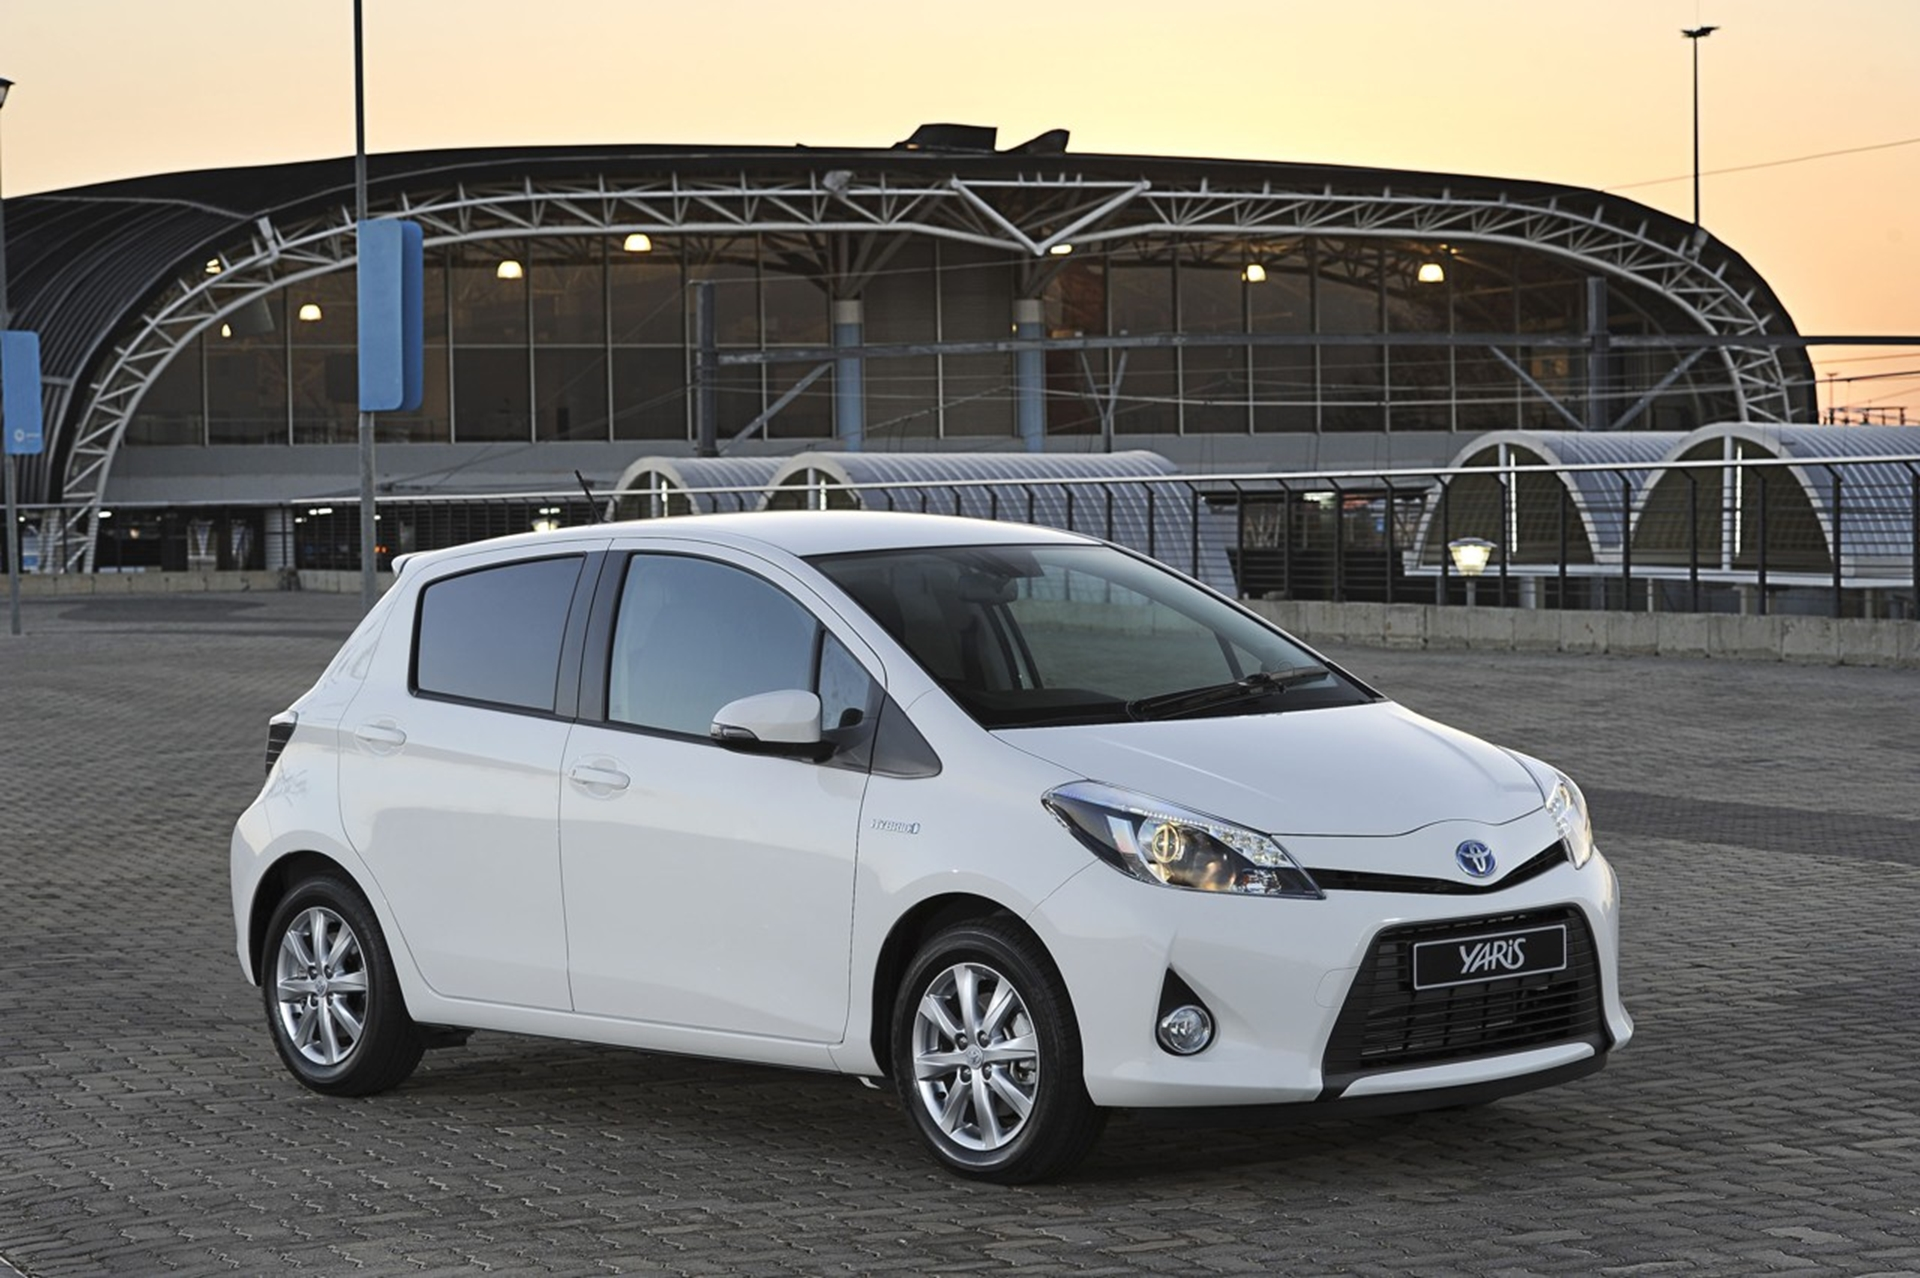 Toyota Yaris Car Of the year